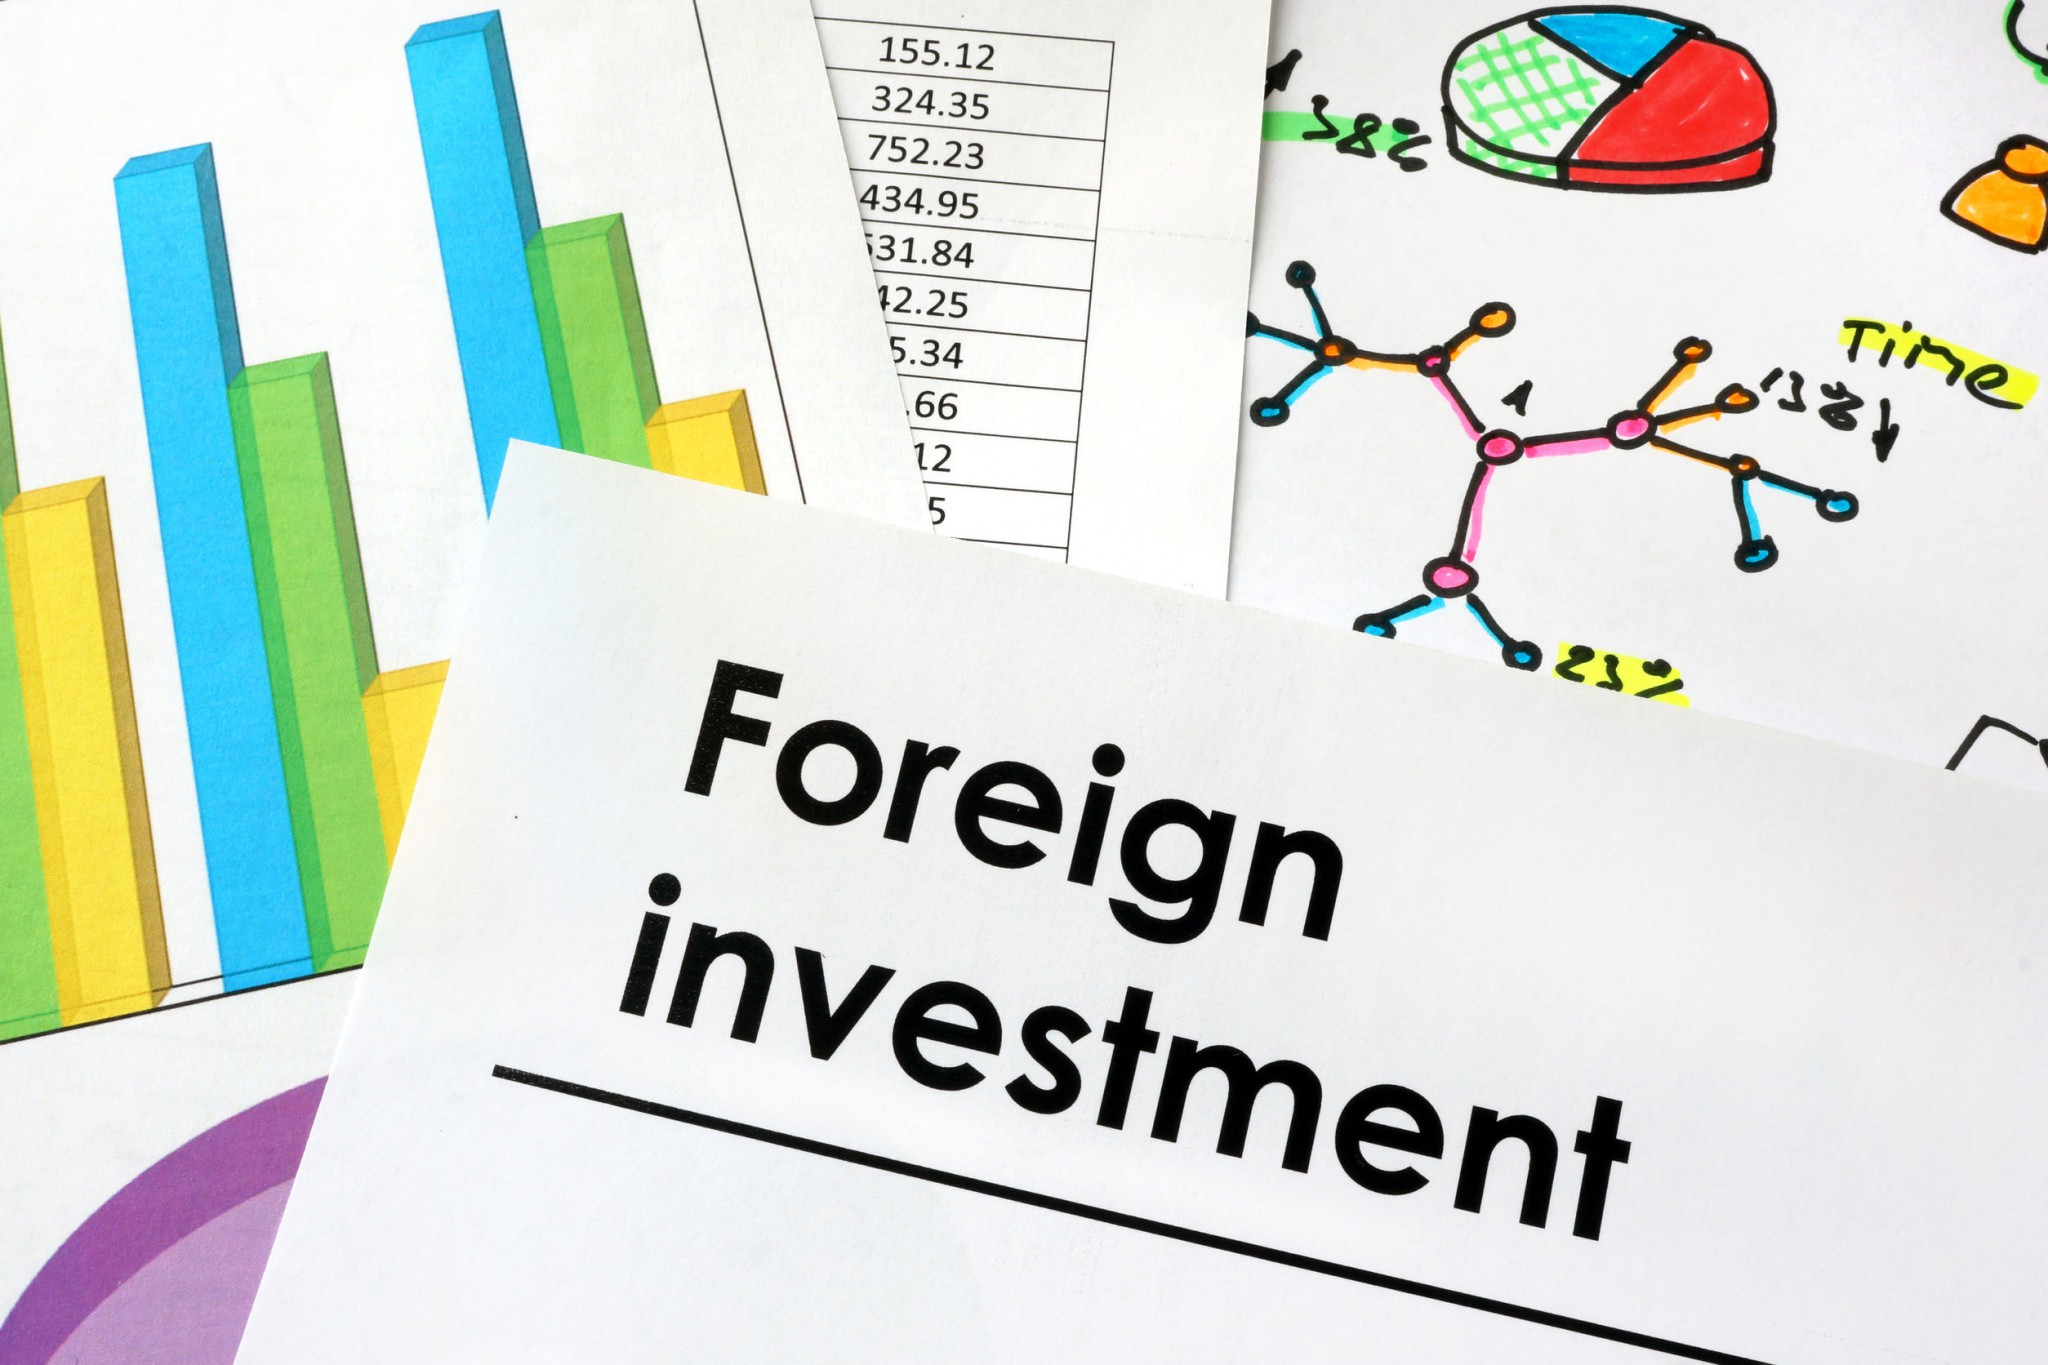 Getting U.S. Tax Deductions On Foreign Real Estate